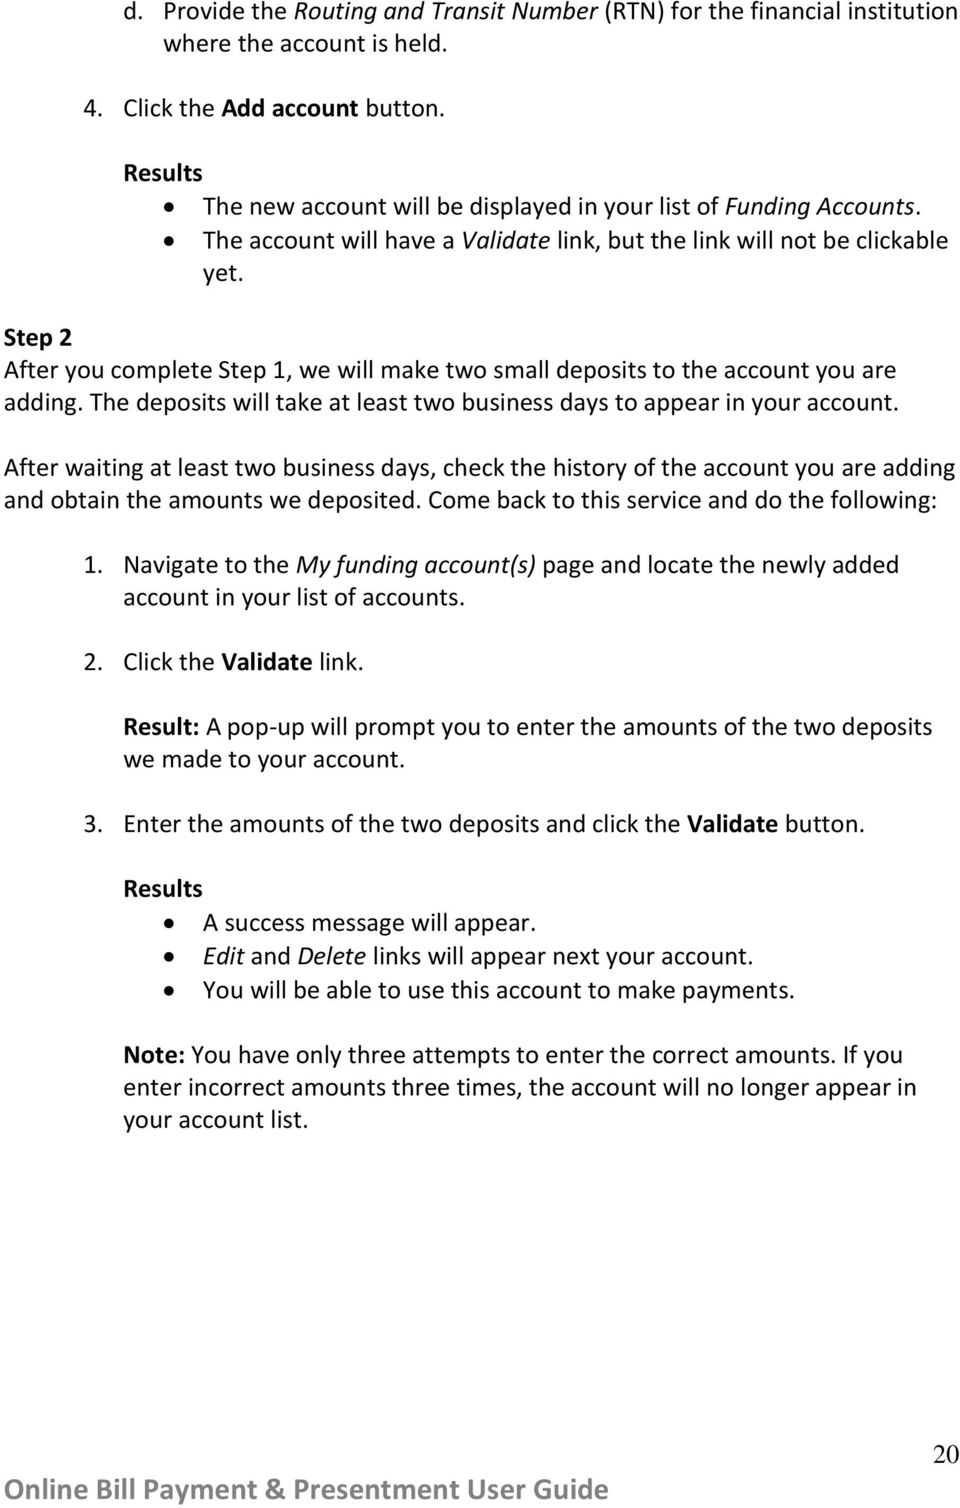 Step 2 After you complete Step 1, we will make two small deposits to the account you are adding. The deposits will take at least two business days to appear in your account.